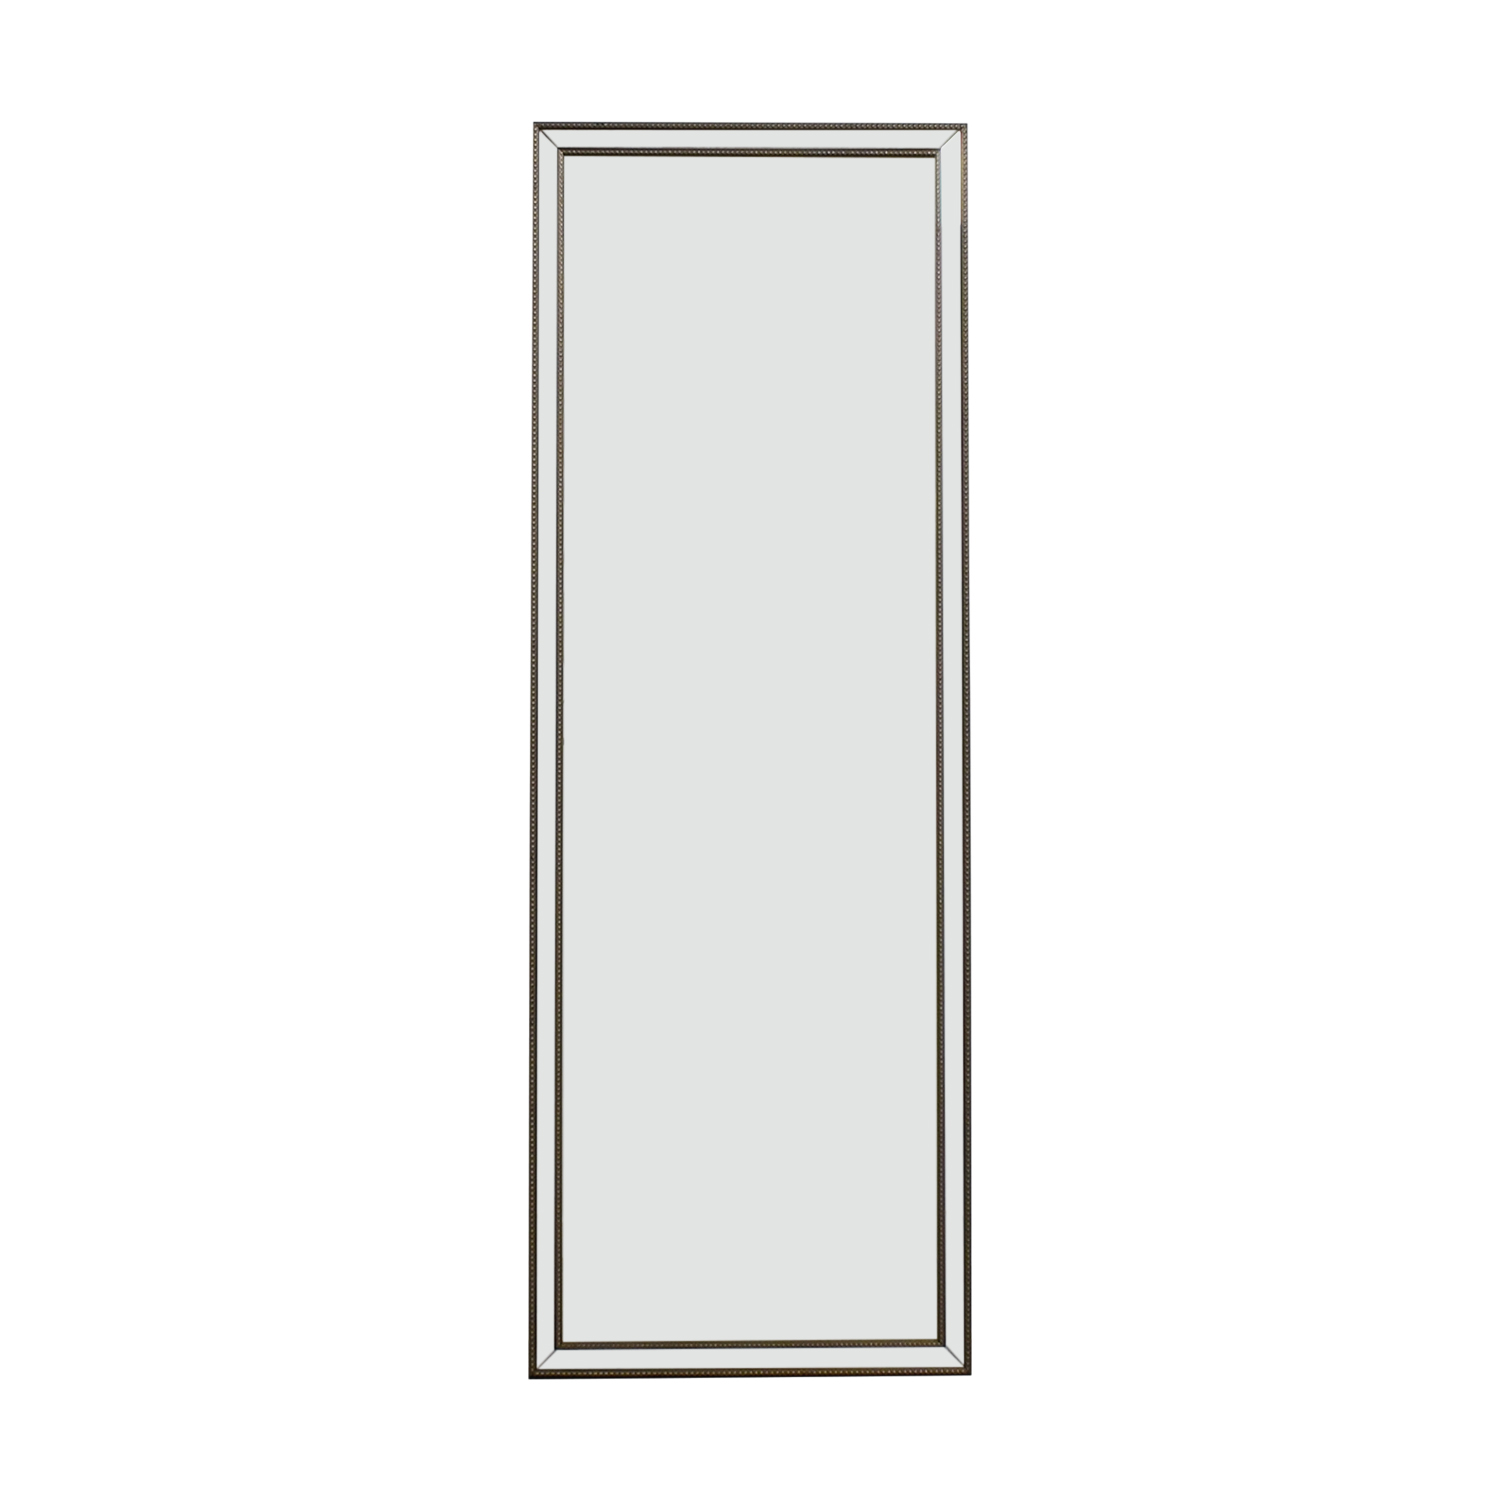 Full Length Wall Mirror on sale